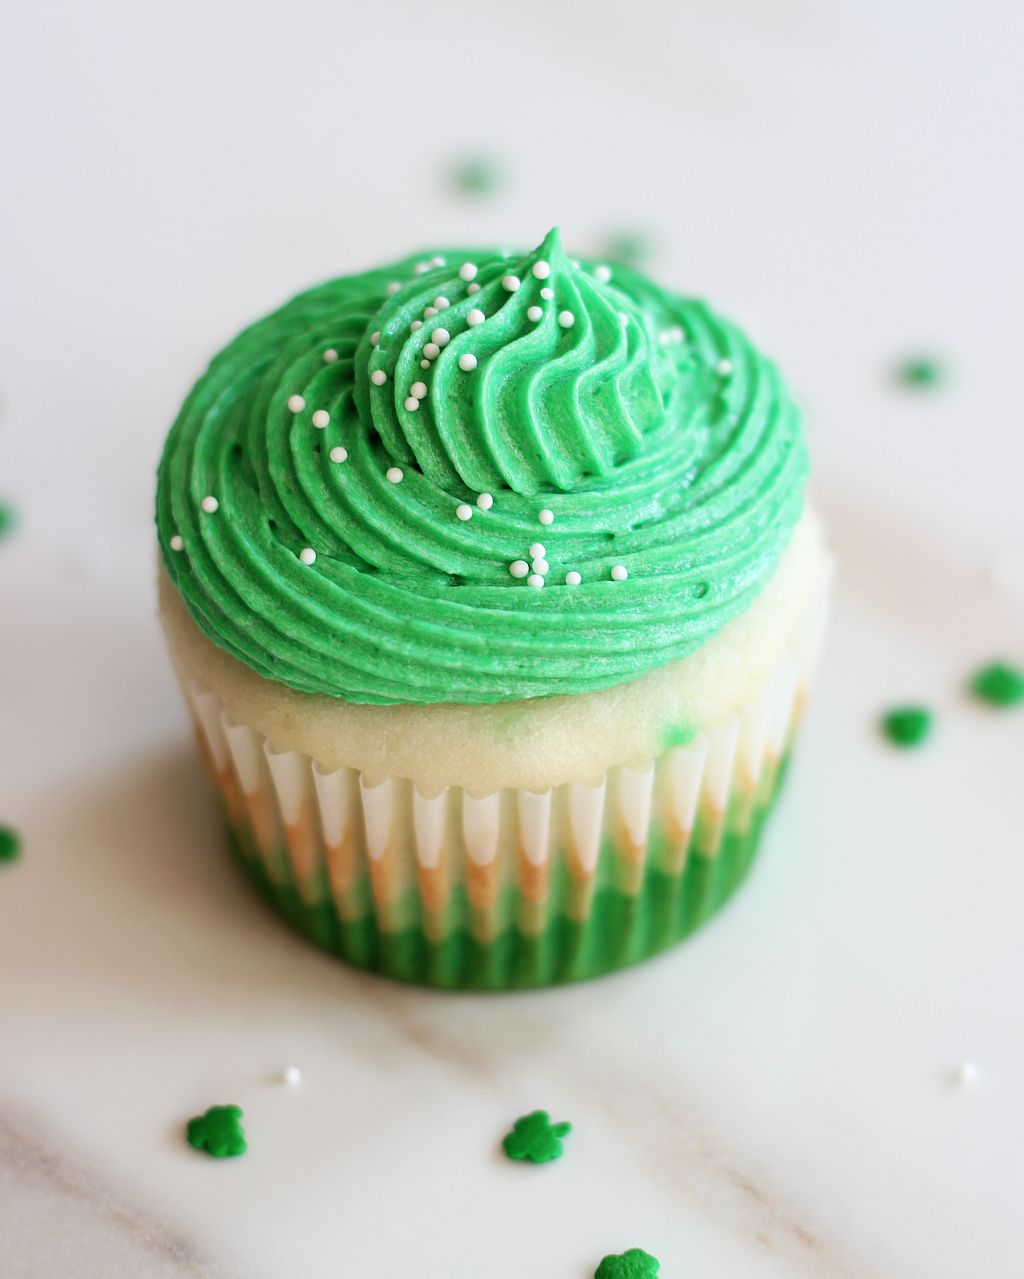 Green And White Cup Cakes For St